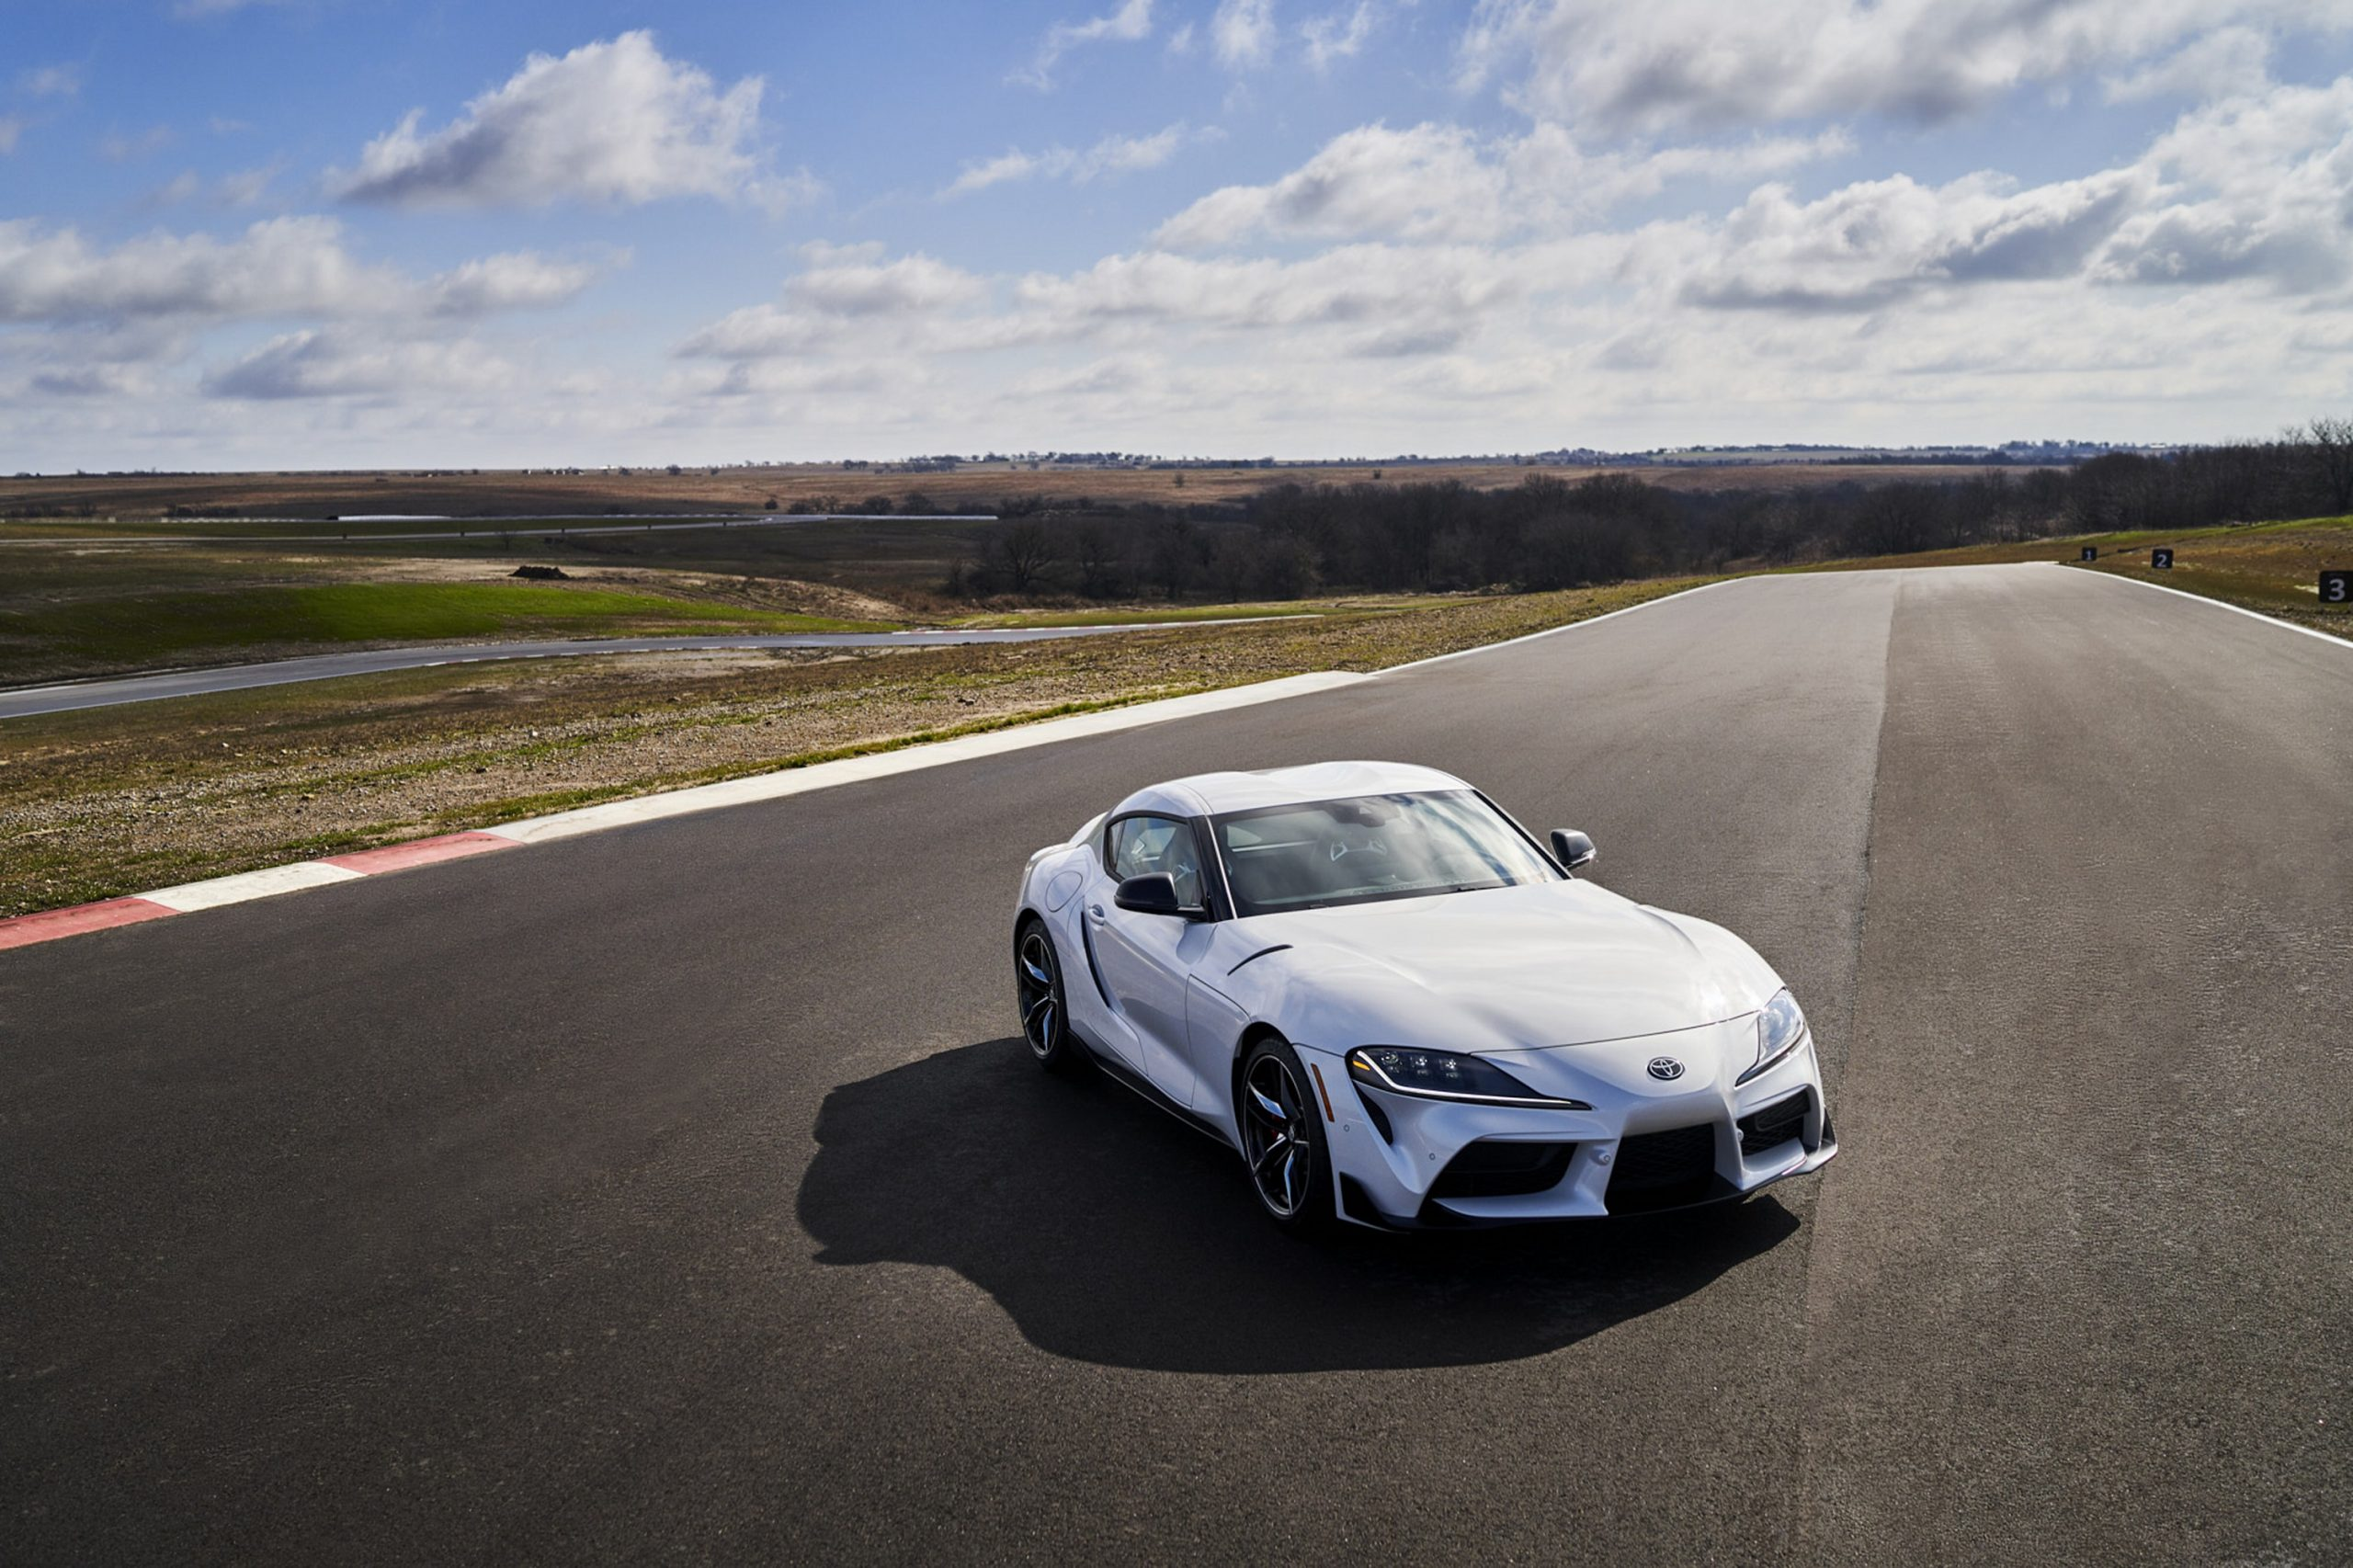 A white Toyota Supra 3.0 Premium shot on a racetrack from the high 3/4 angle